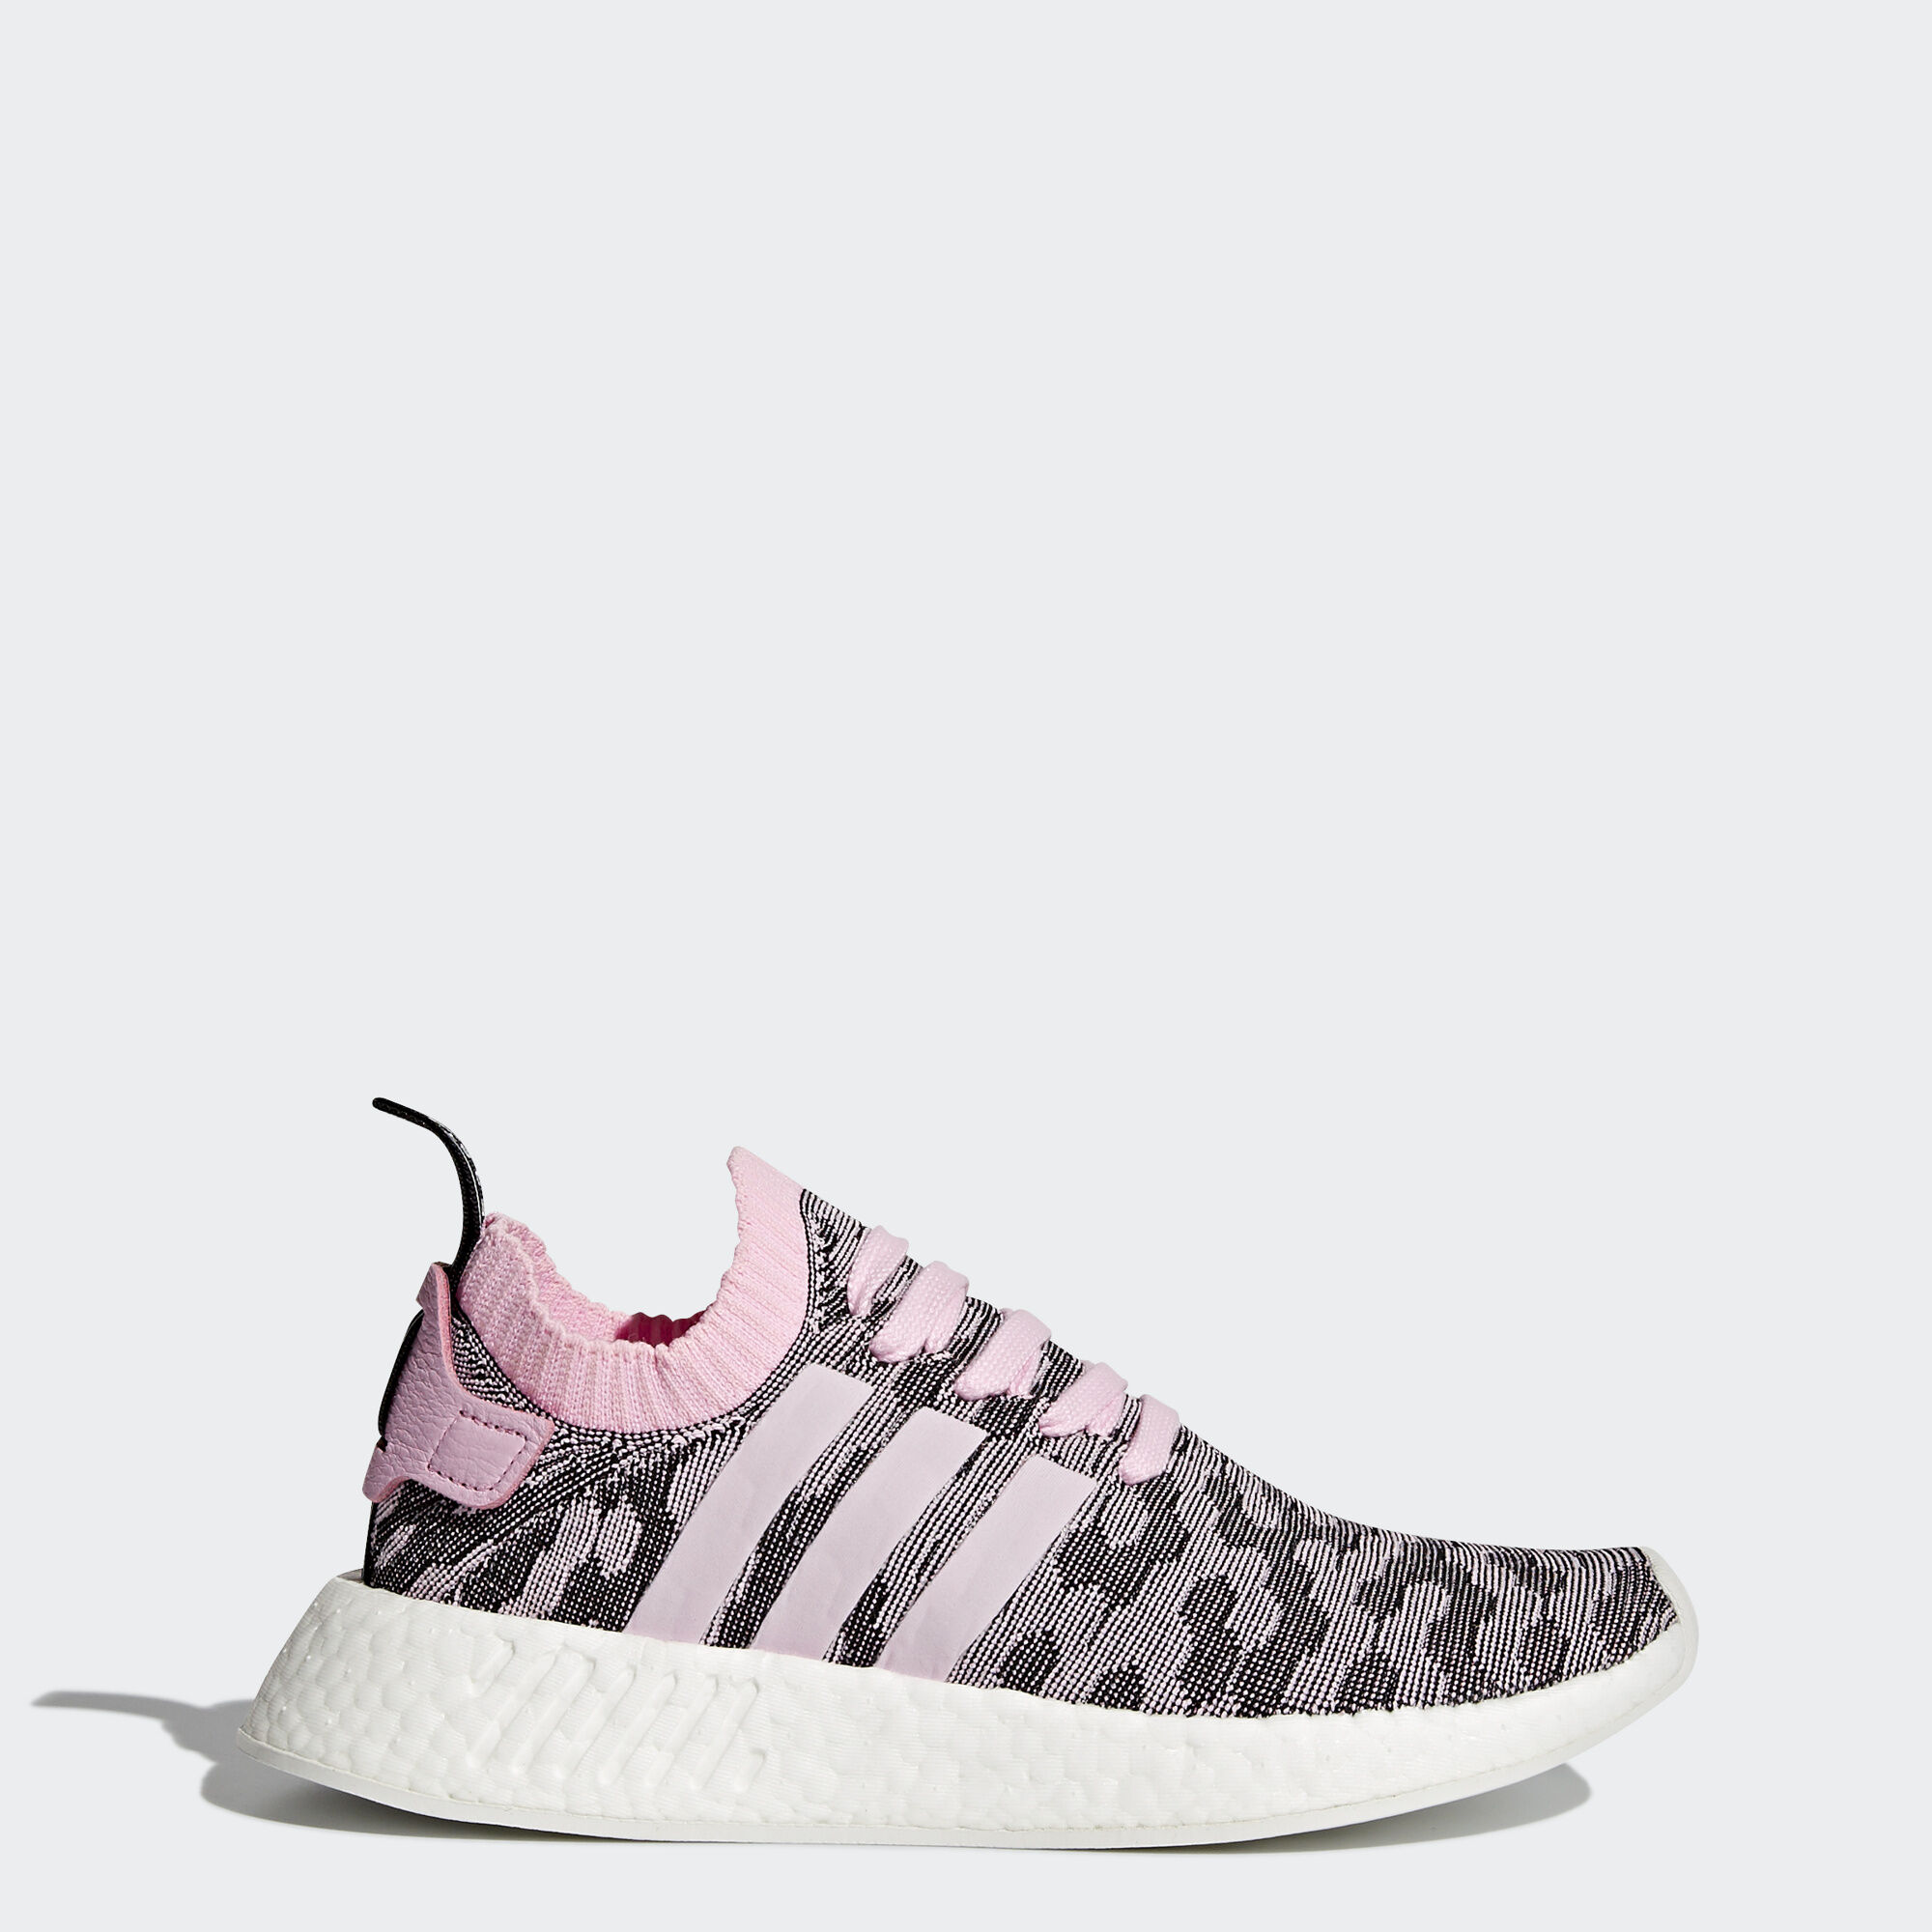 Pink Black Womens Purple Crazy Price Adidas Zx 750 Stars Running Shoes